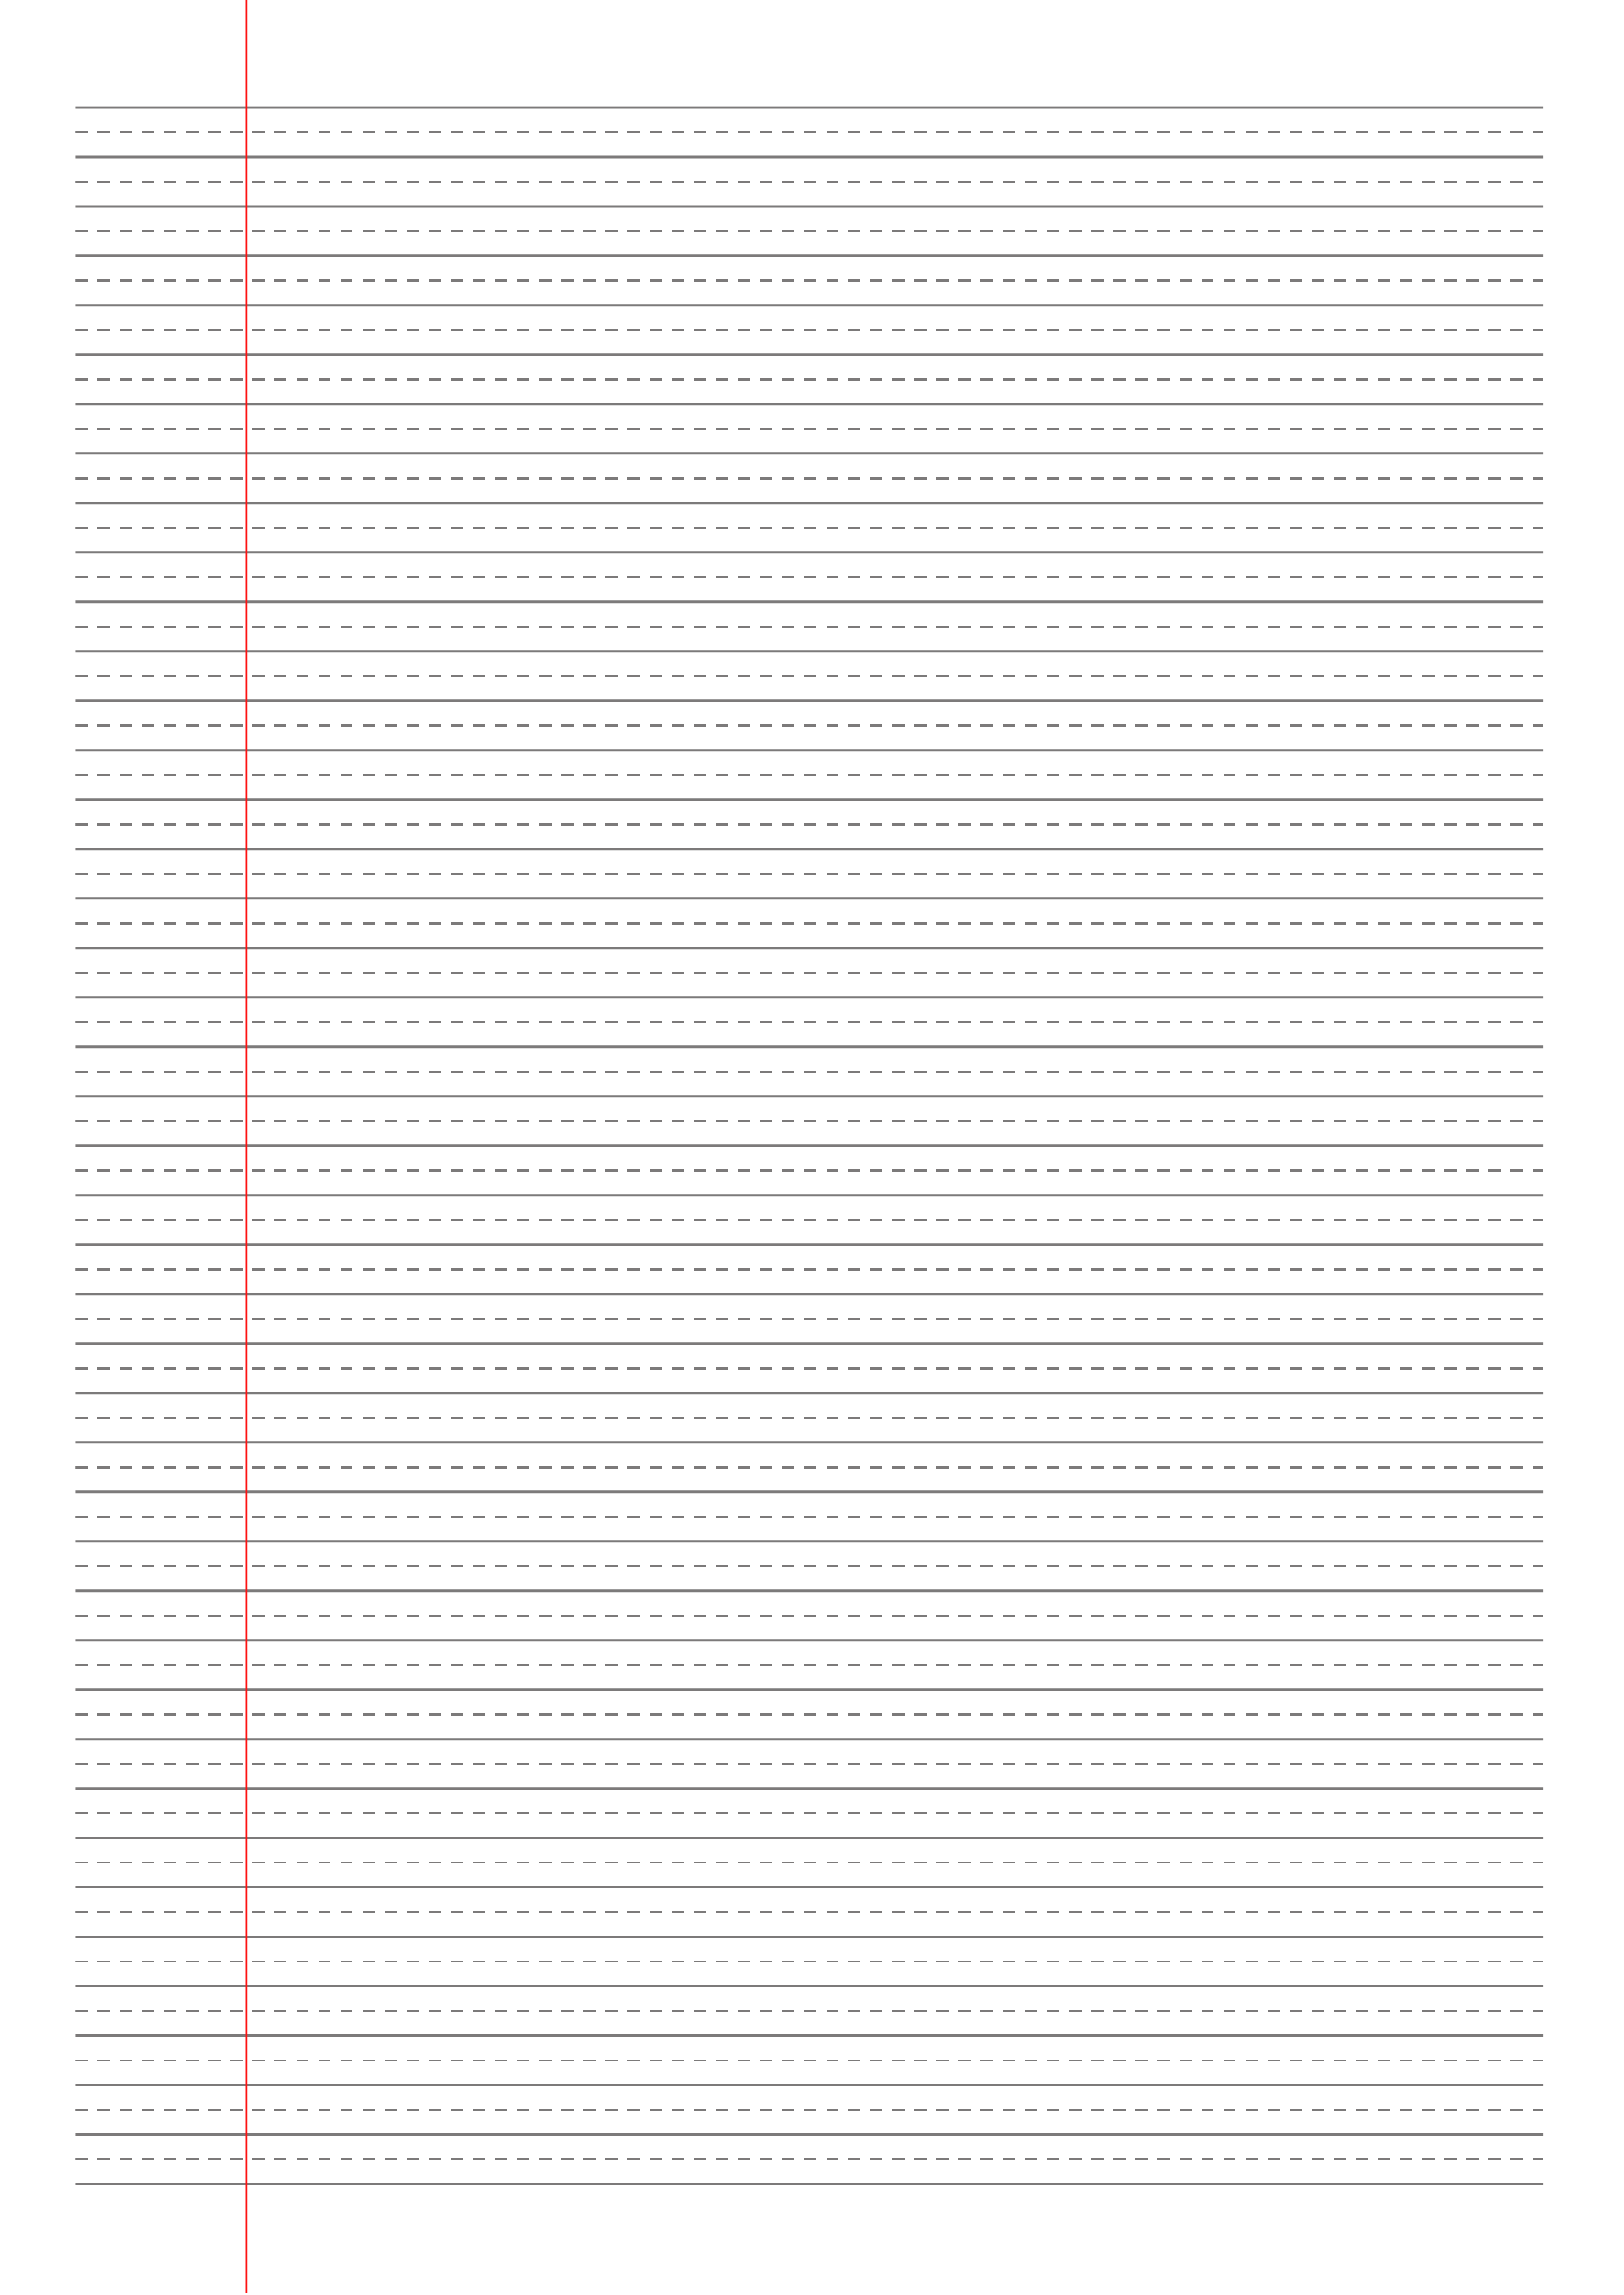 Printable Narrow Ruled With Dashed Center Guide Line Gray Lines Pdf Download Printable Lined Paper Ruled Paper Handwriting Paper